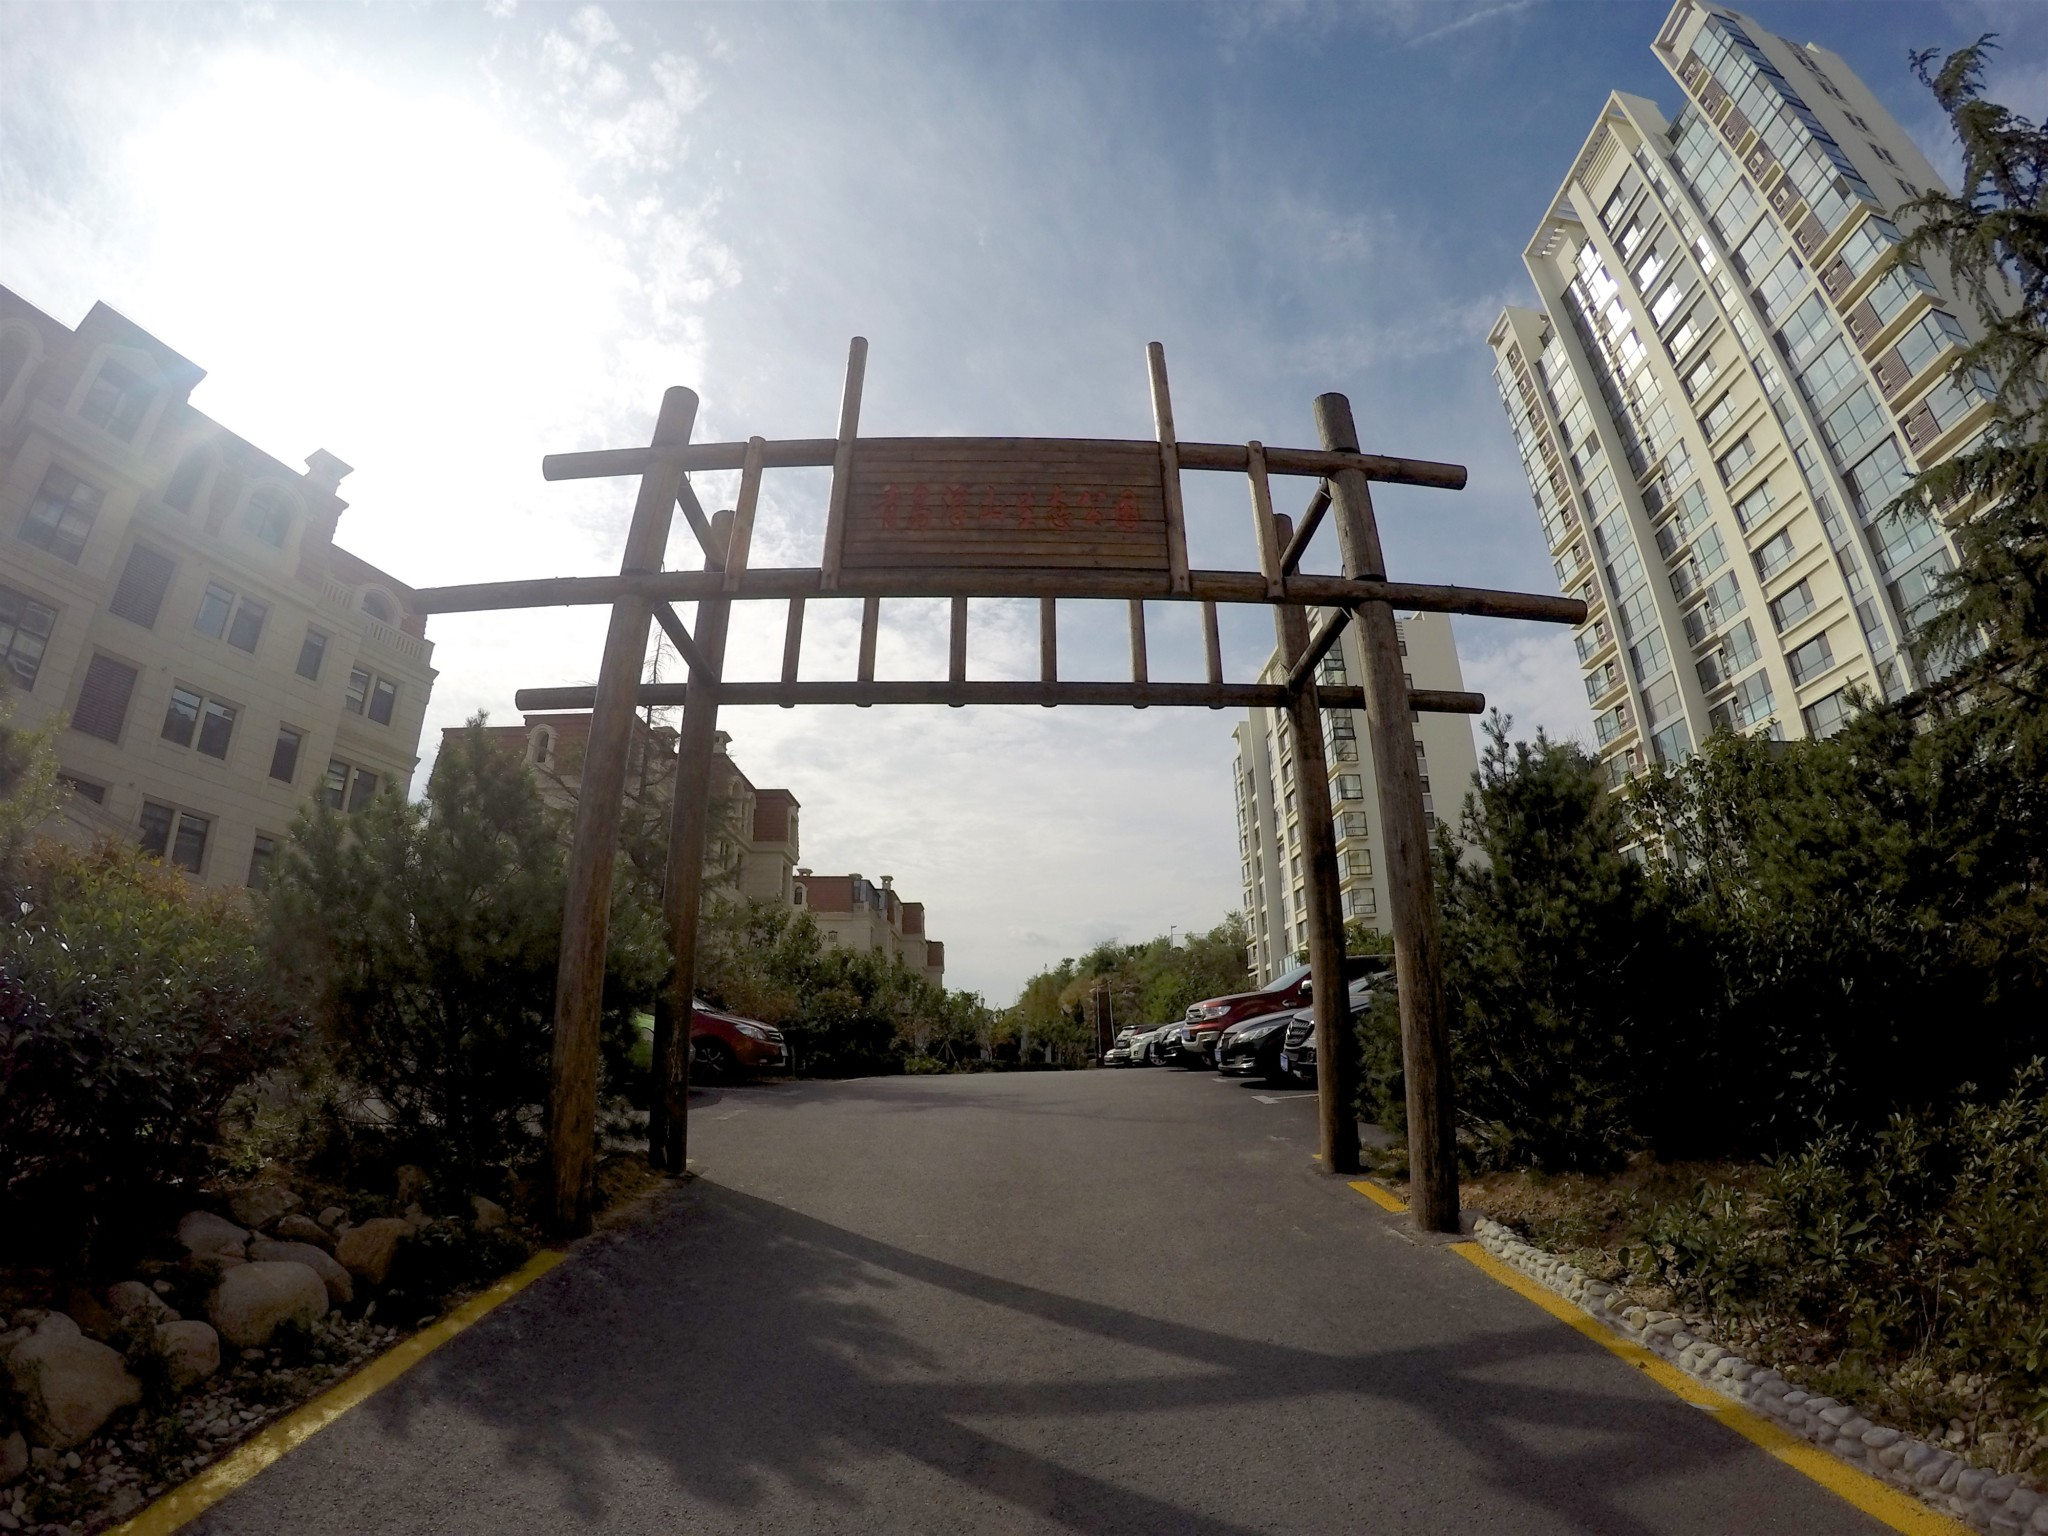 FuShan's Wooden Path